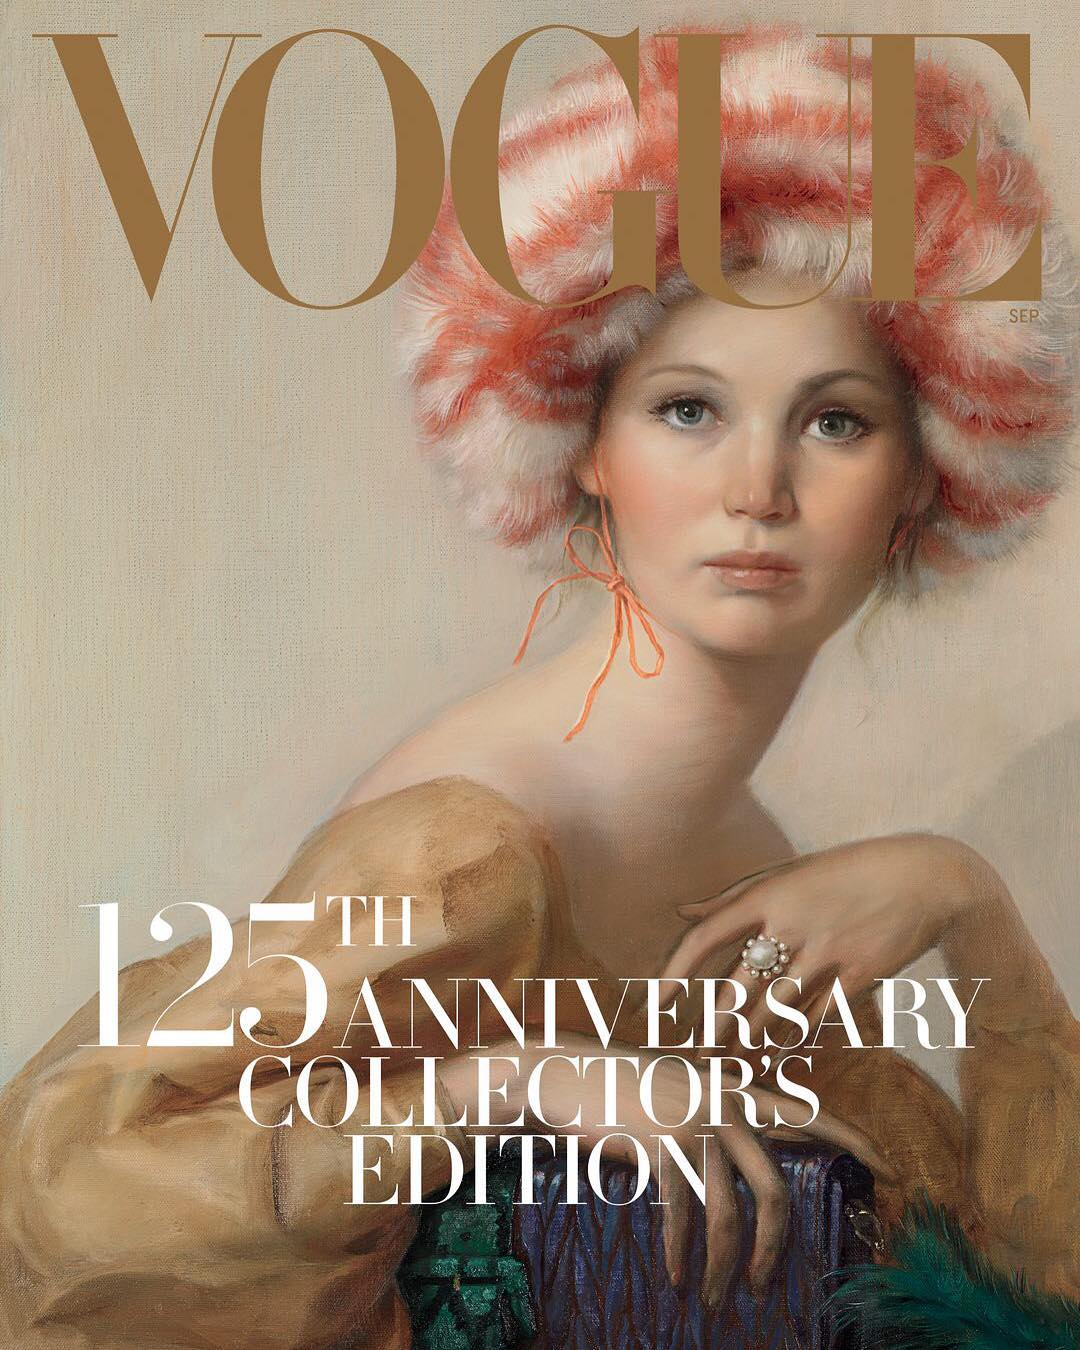 Jennifer Lawrence Covers VOGUE, Talks About Dating 50-Year-Old Men! image